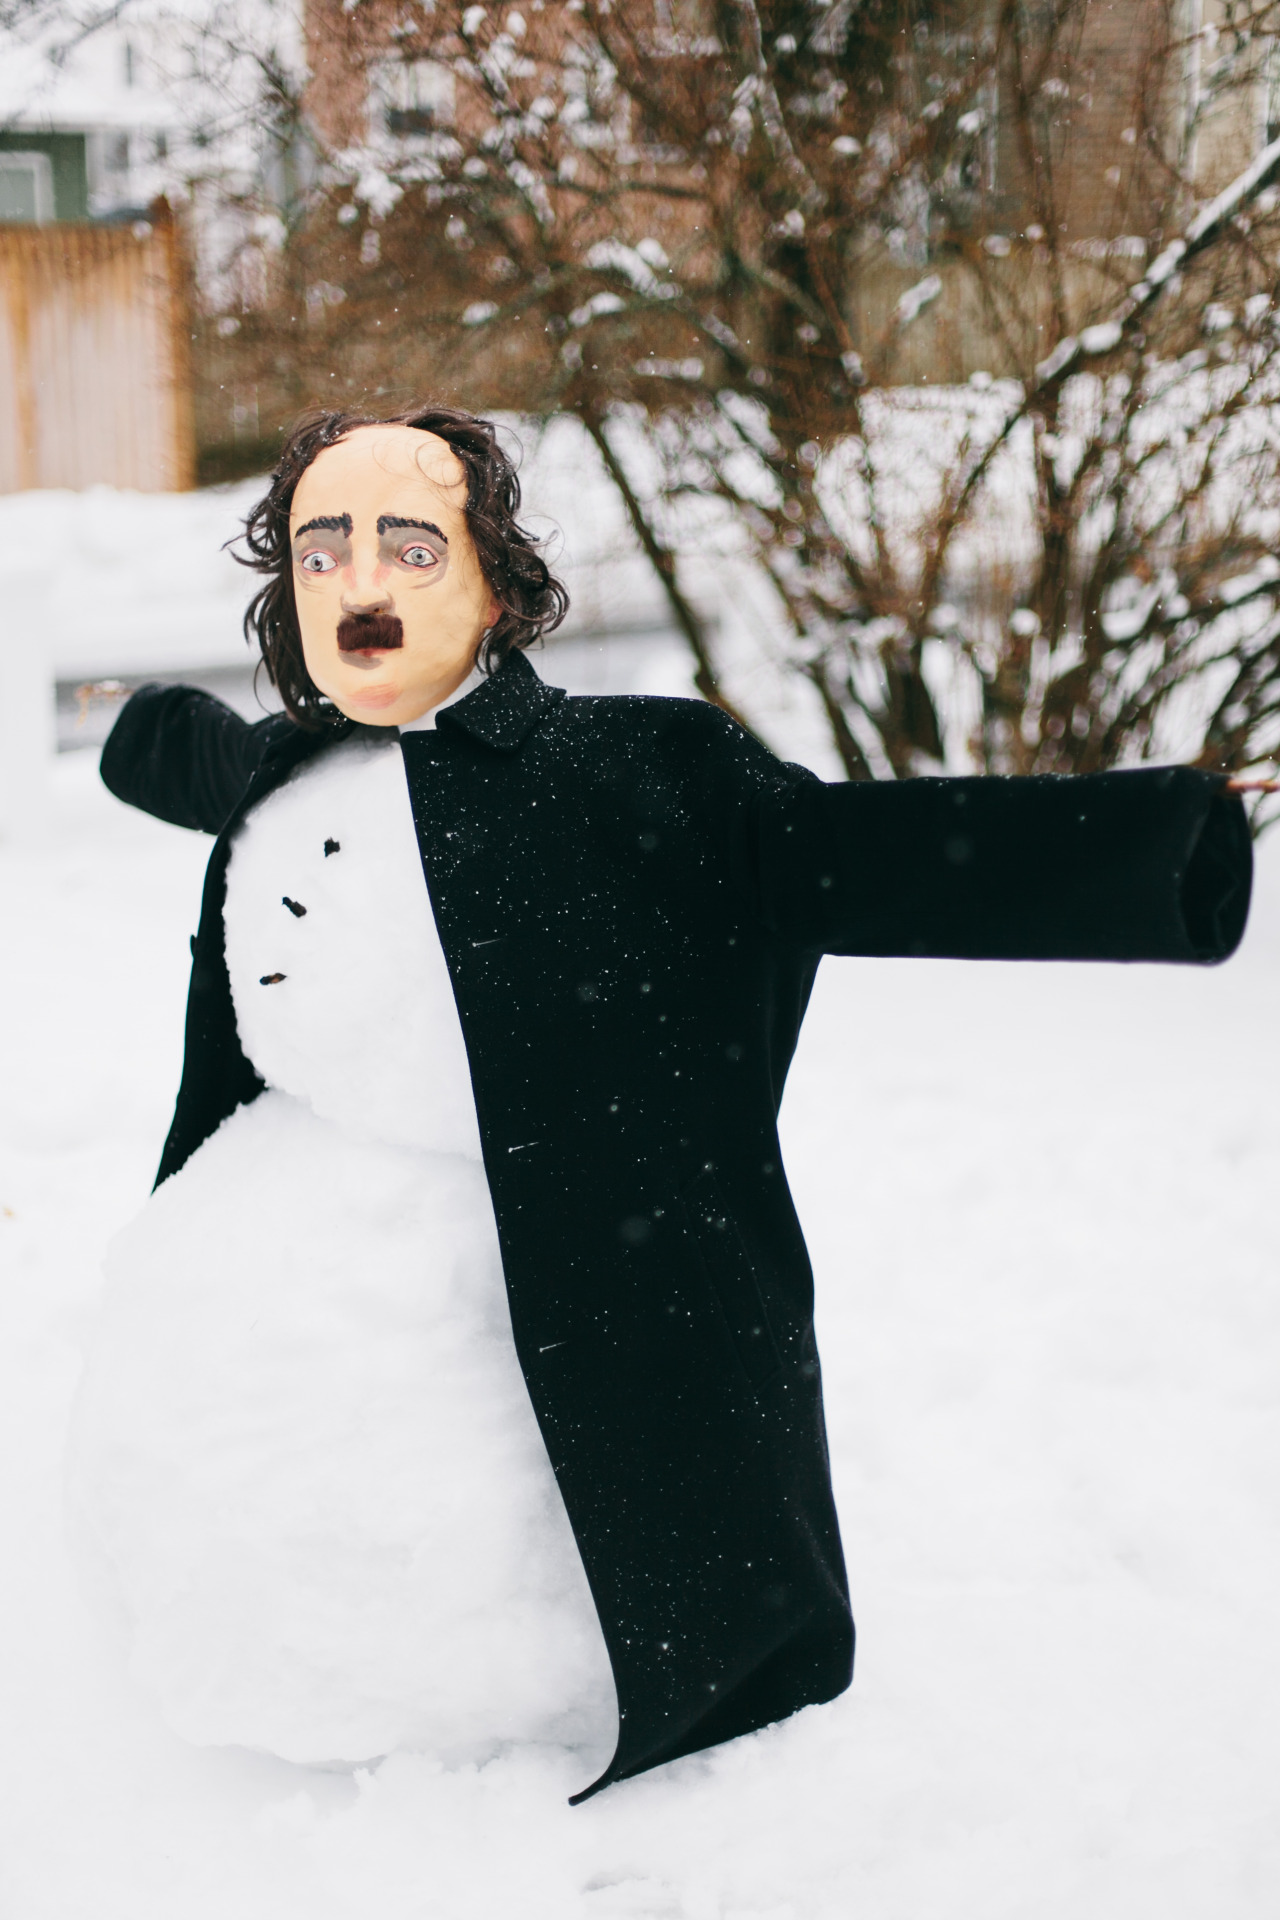 We built a Poe-man today, because, I don't know…have you met my husband?